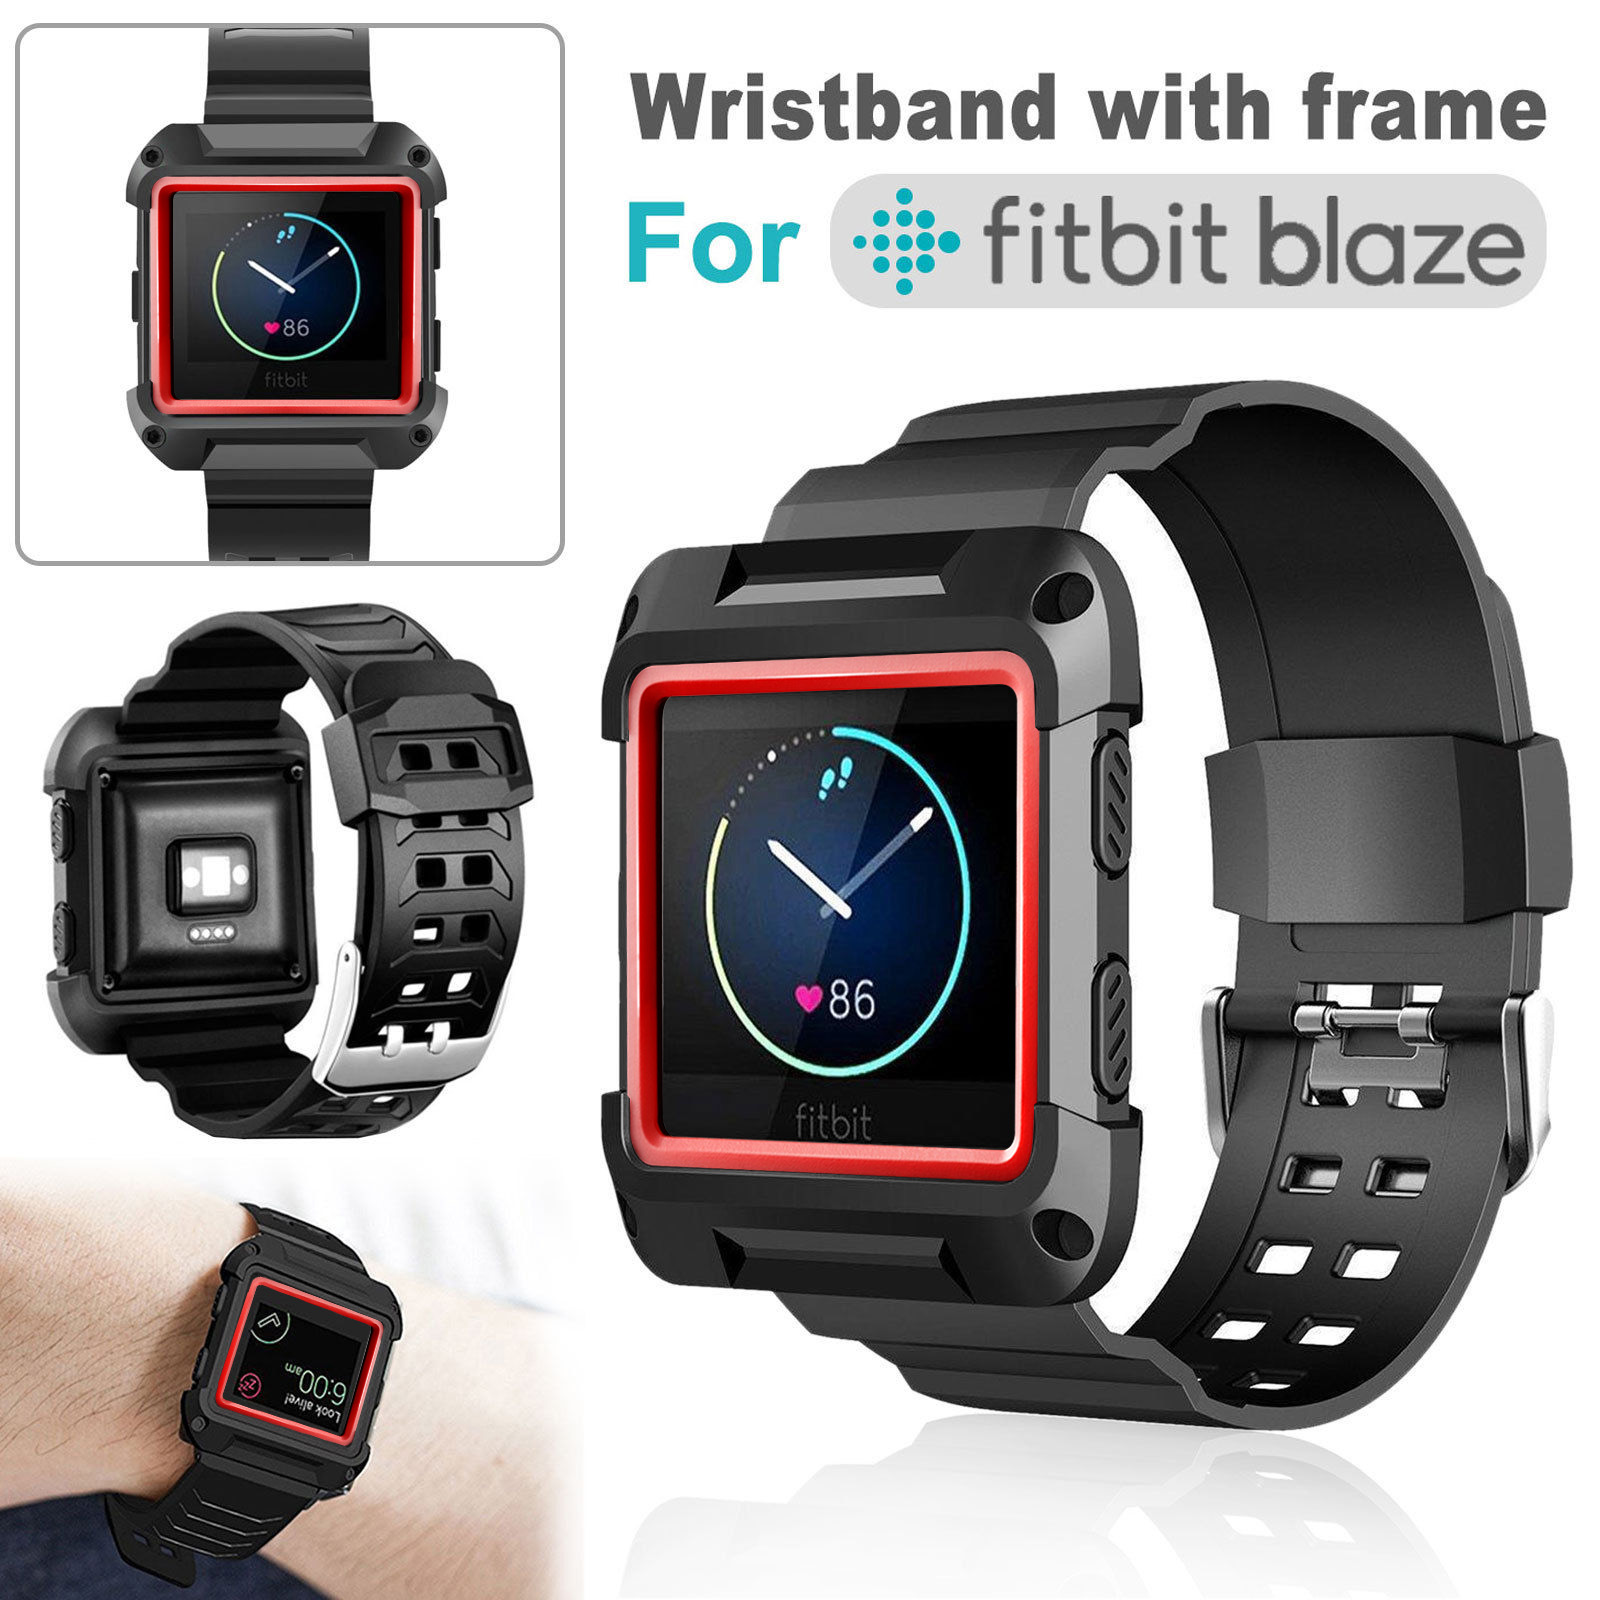 TSV Silicone Replacement Band Strap with Black Frame Case For Fitbit Blaze - Red & Black